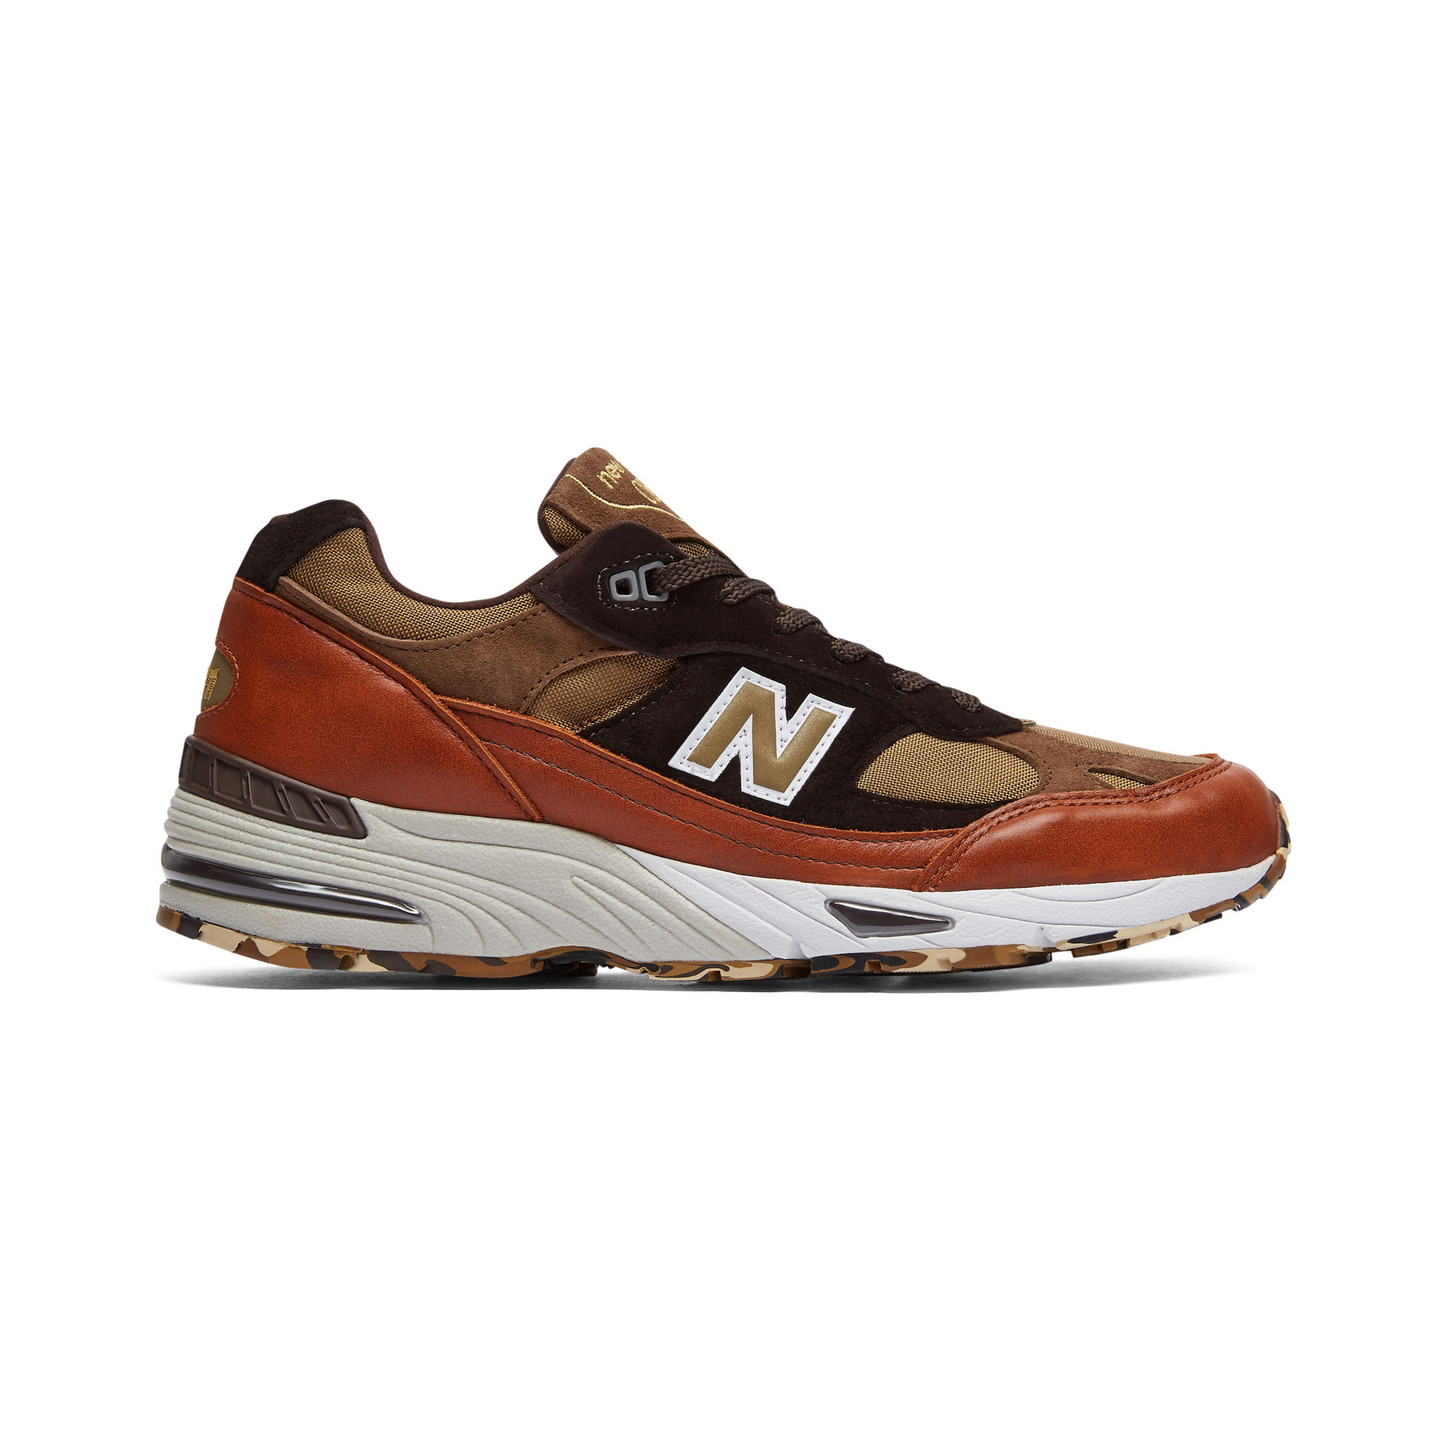 New Balance M991 SOP - Made in England Burnt Orange / Brown / Brown Camo M991SOP